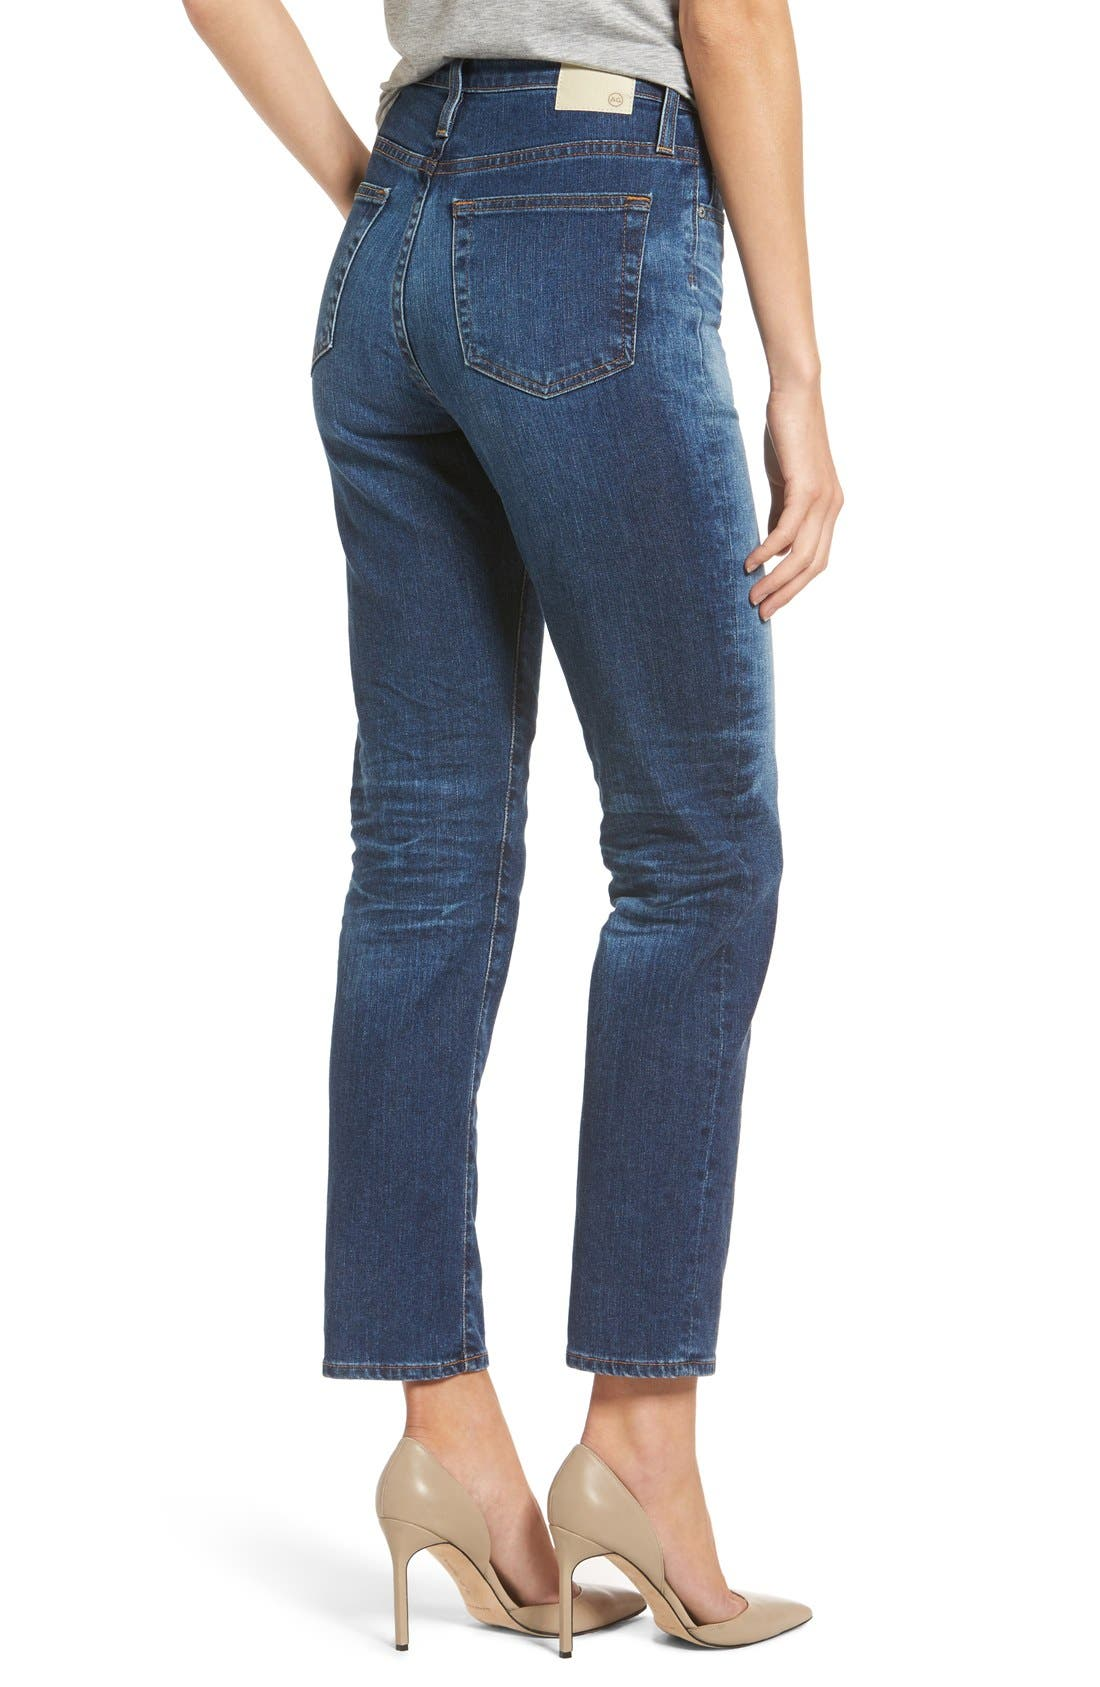 'The Phoebe' Vintage High Rise Straight Leg Jeans,                             Alternate thumbnail 2, color,                             10Y Wick